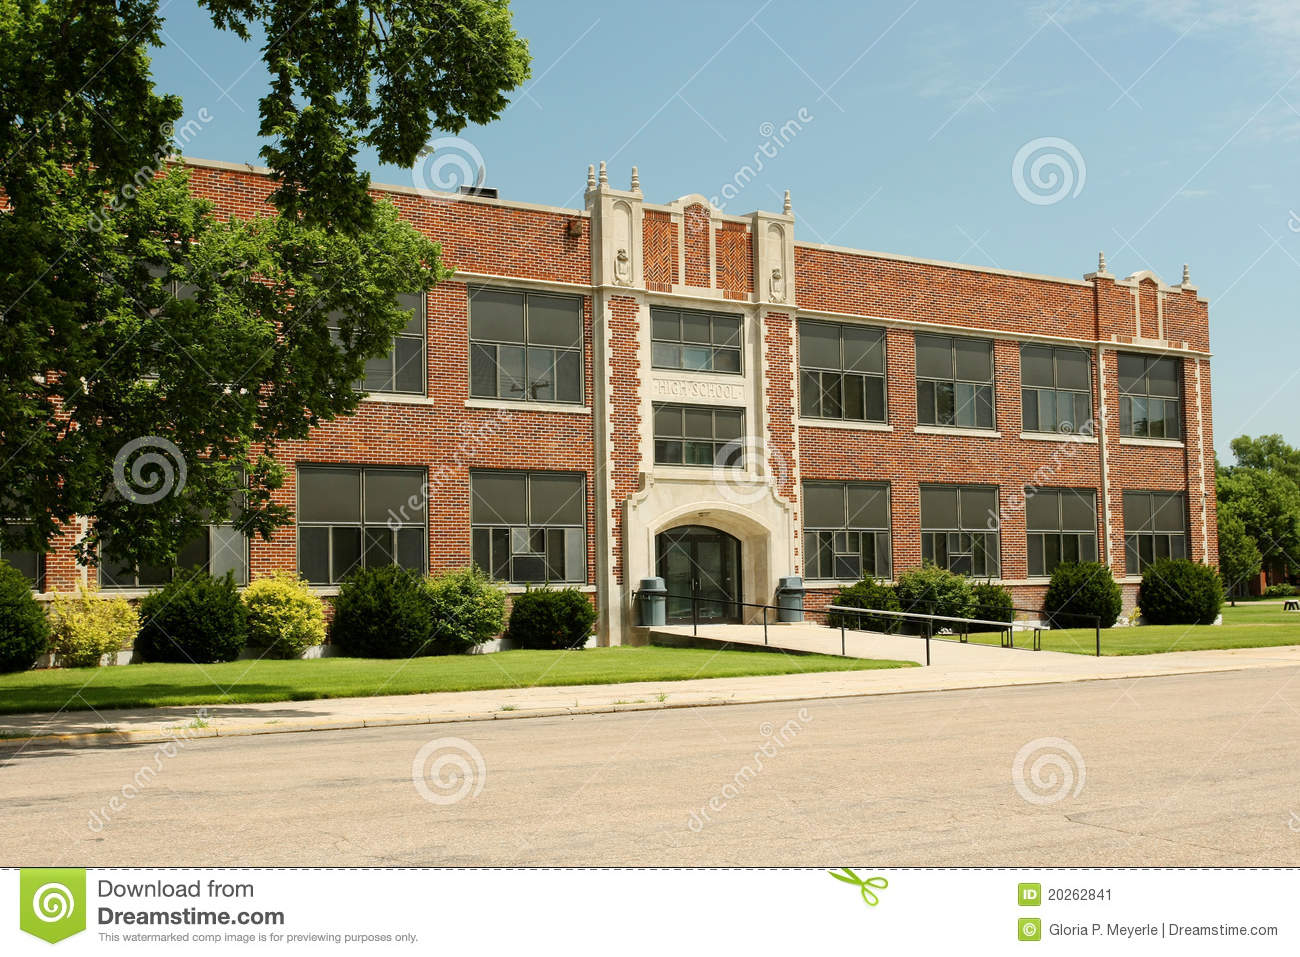 Generic High School Building